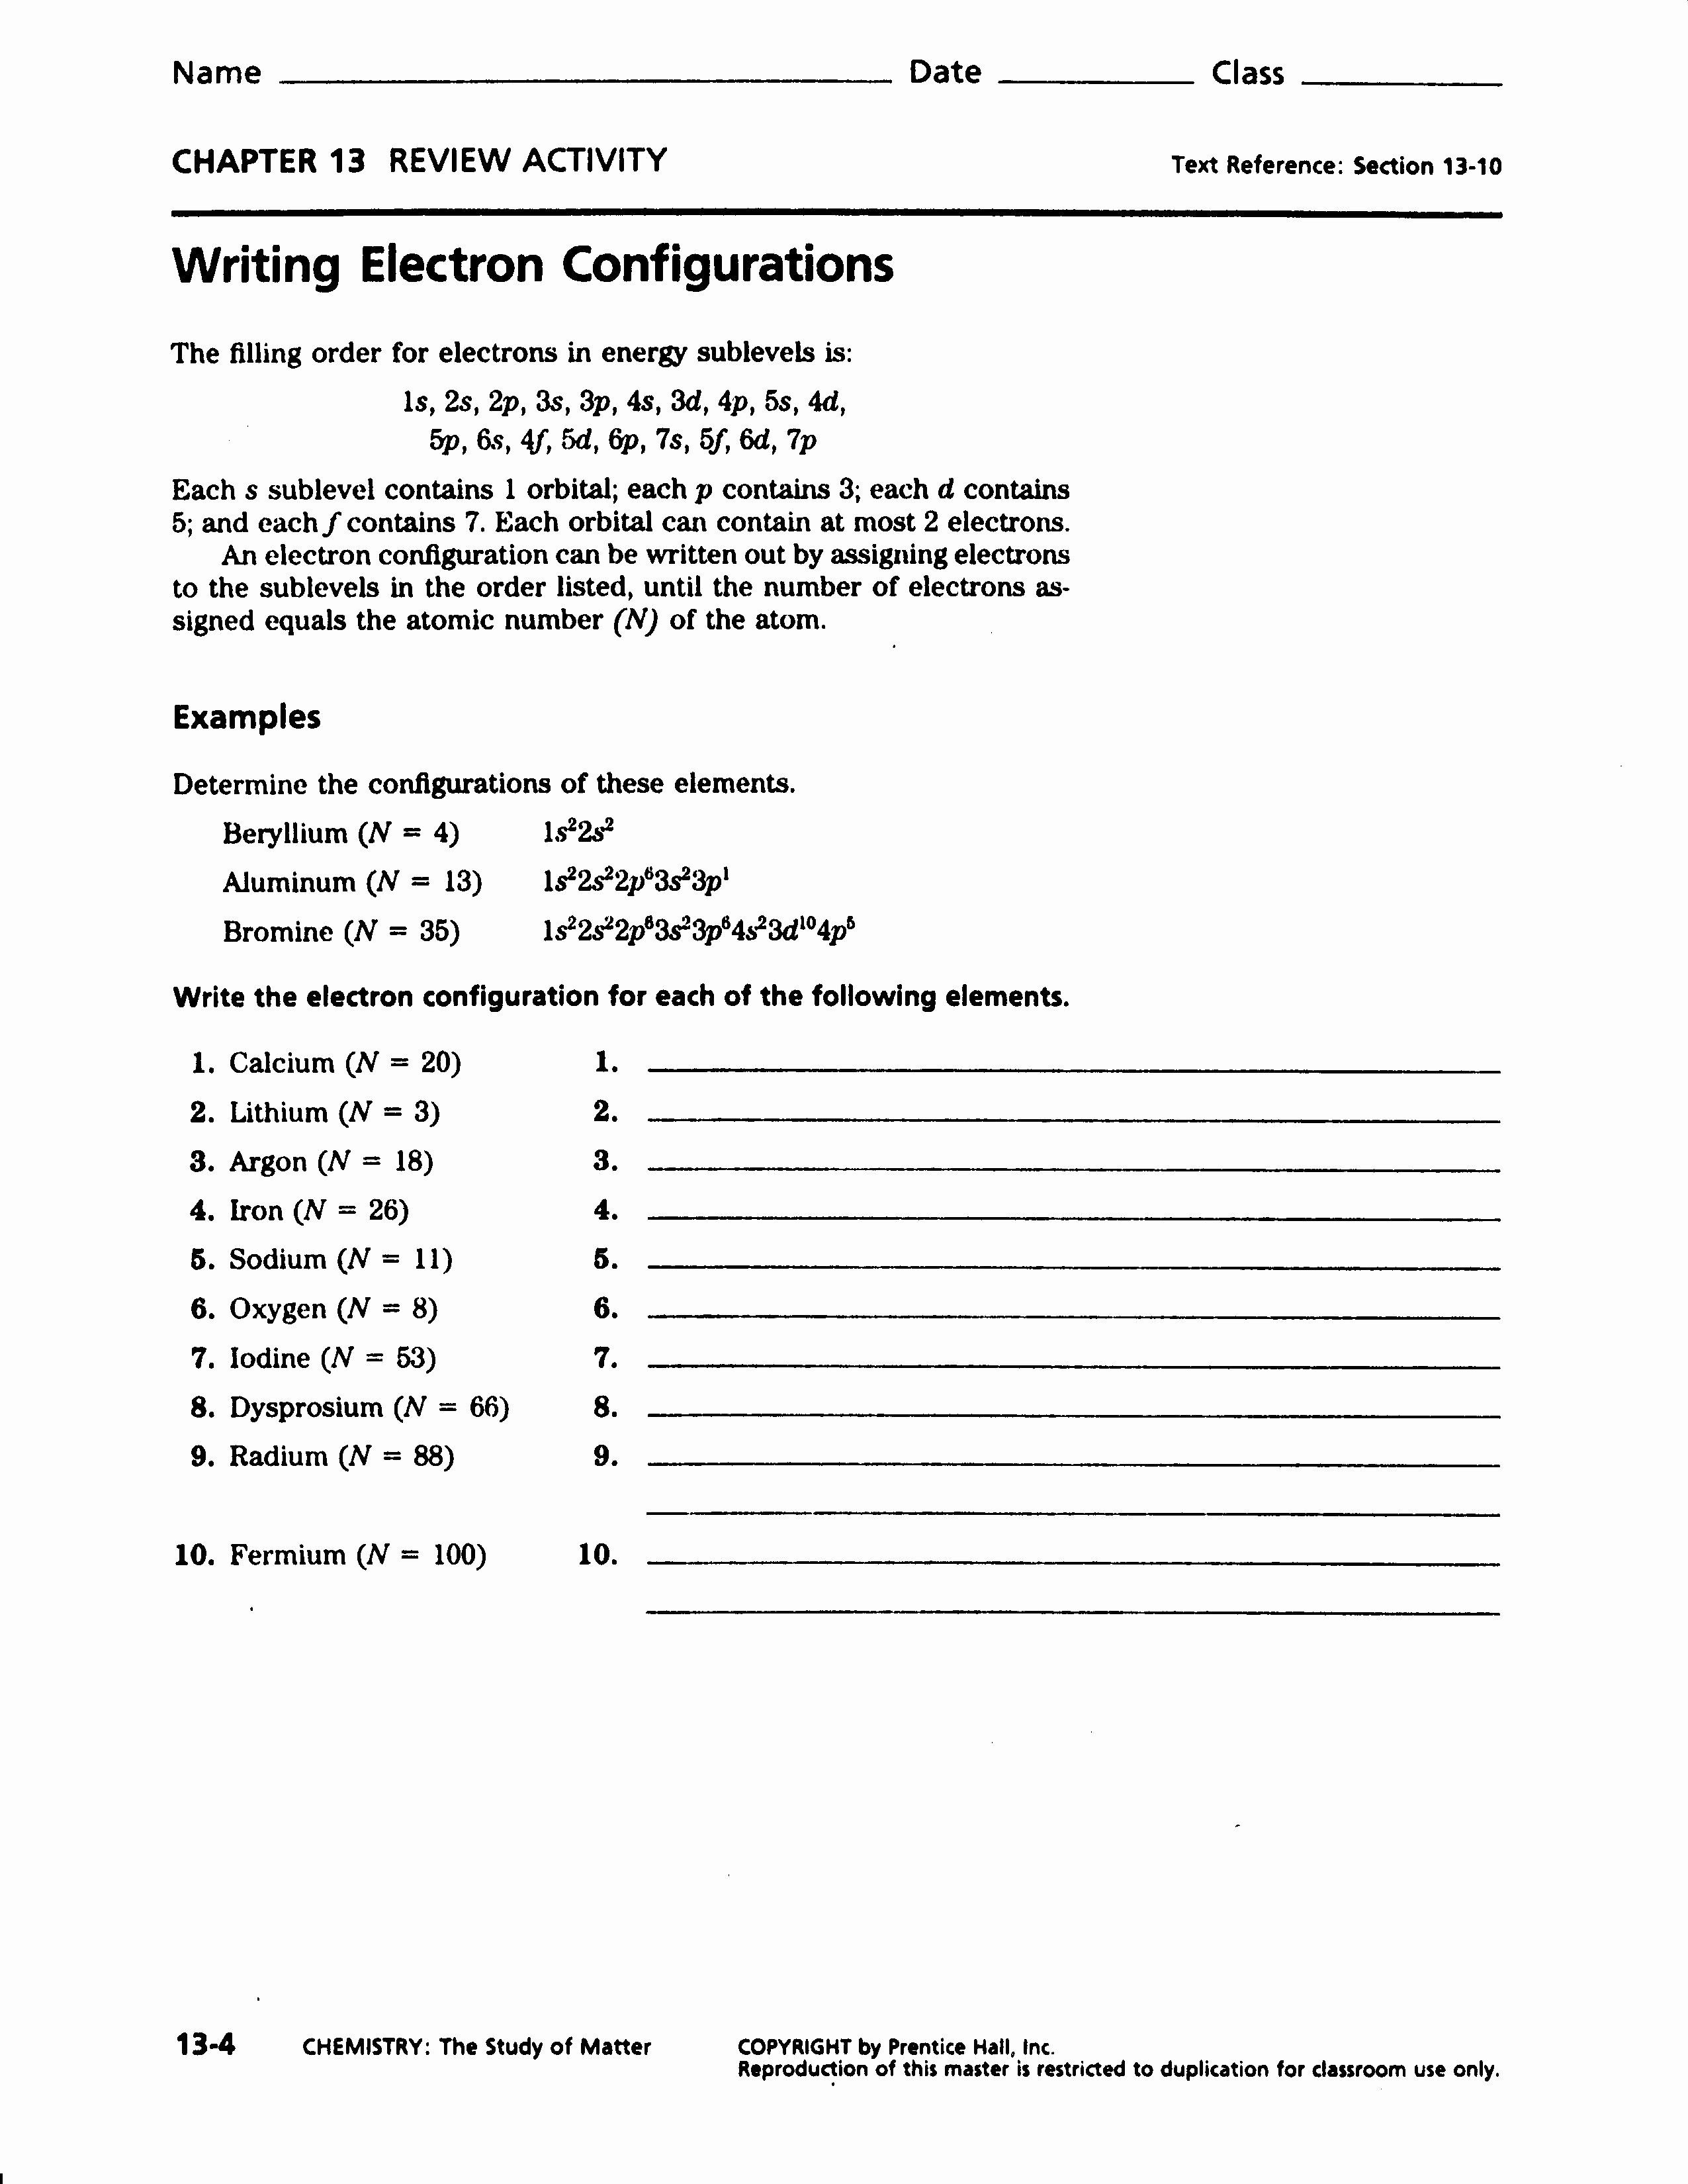 Electron Configuration Worksheet Answers Key New Electron